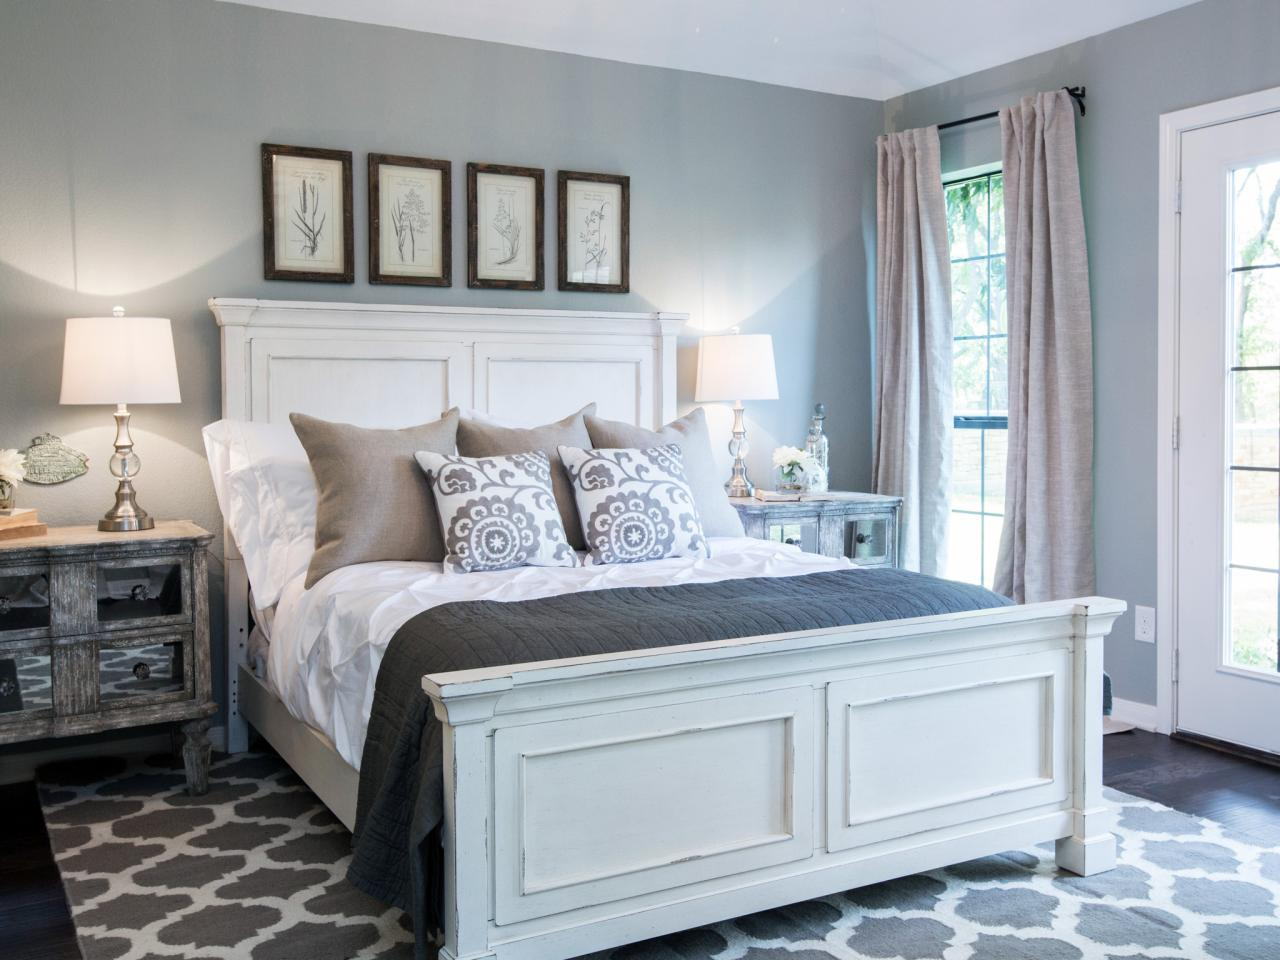 Chip and joanna gaines bed and breakfast home decorating for Does the furniture stay on fixer upper